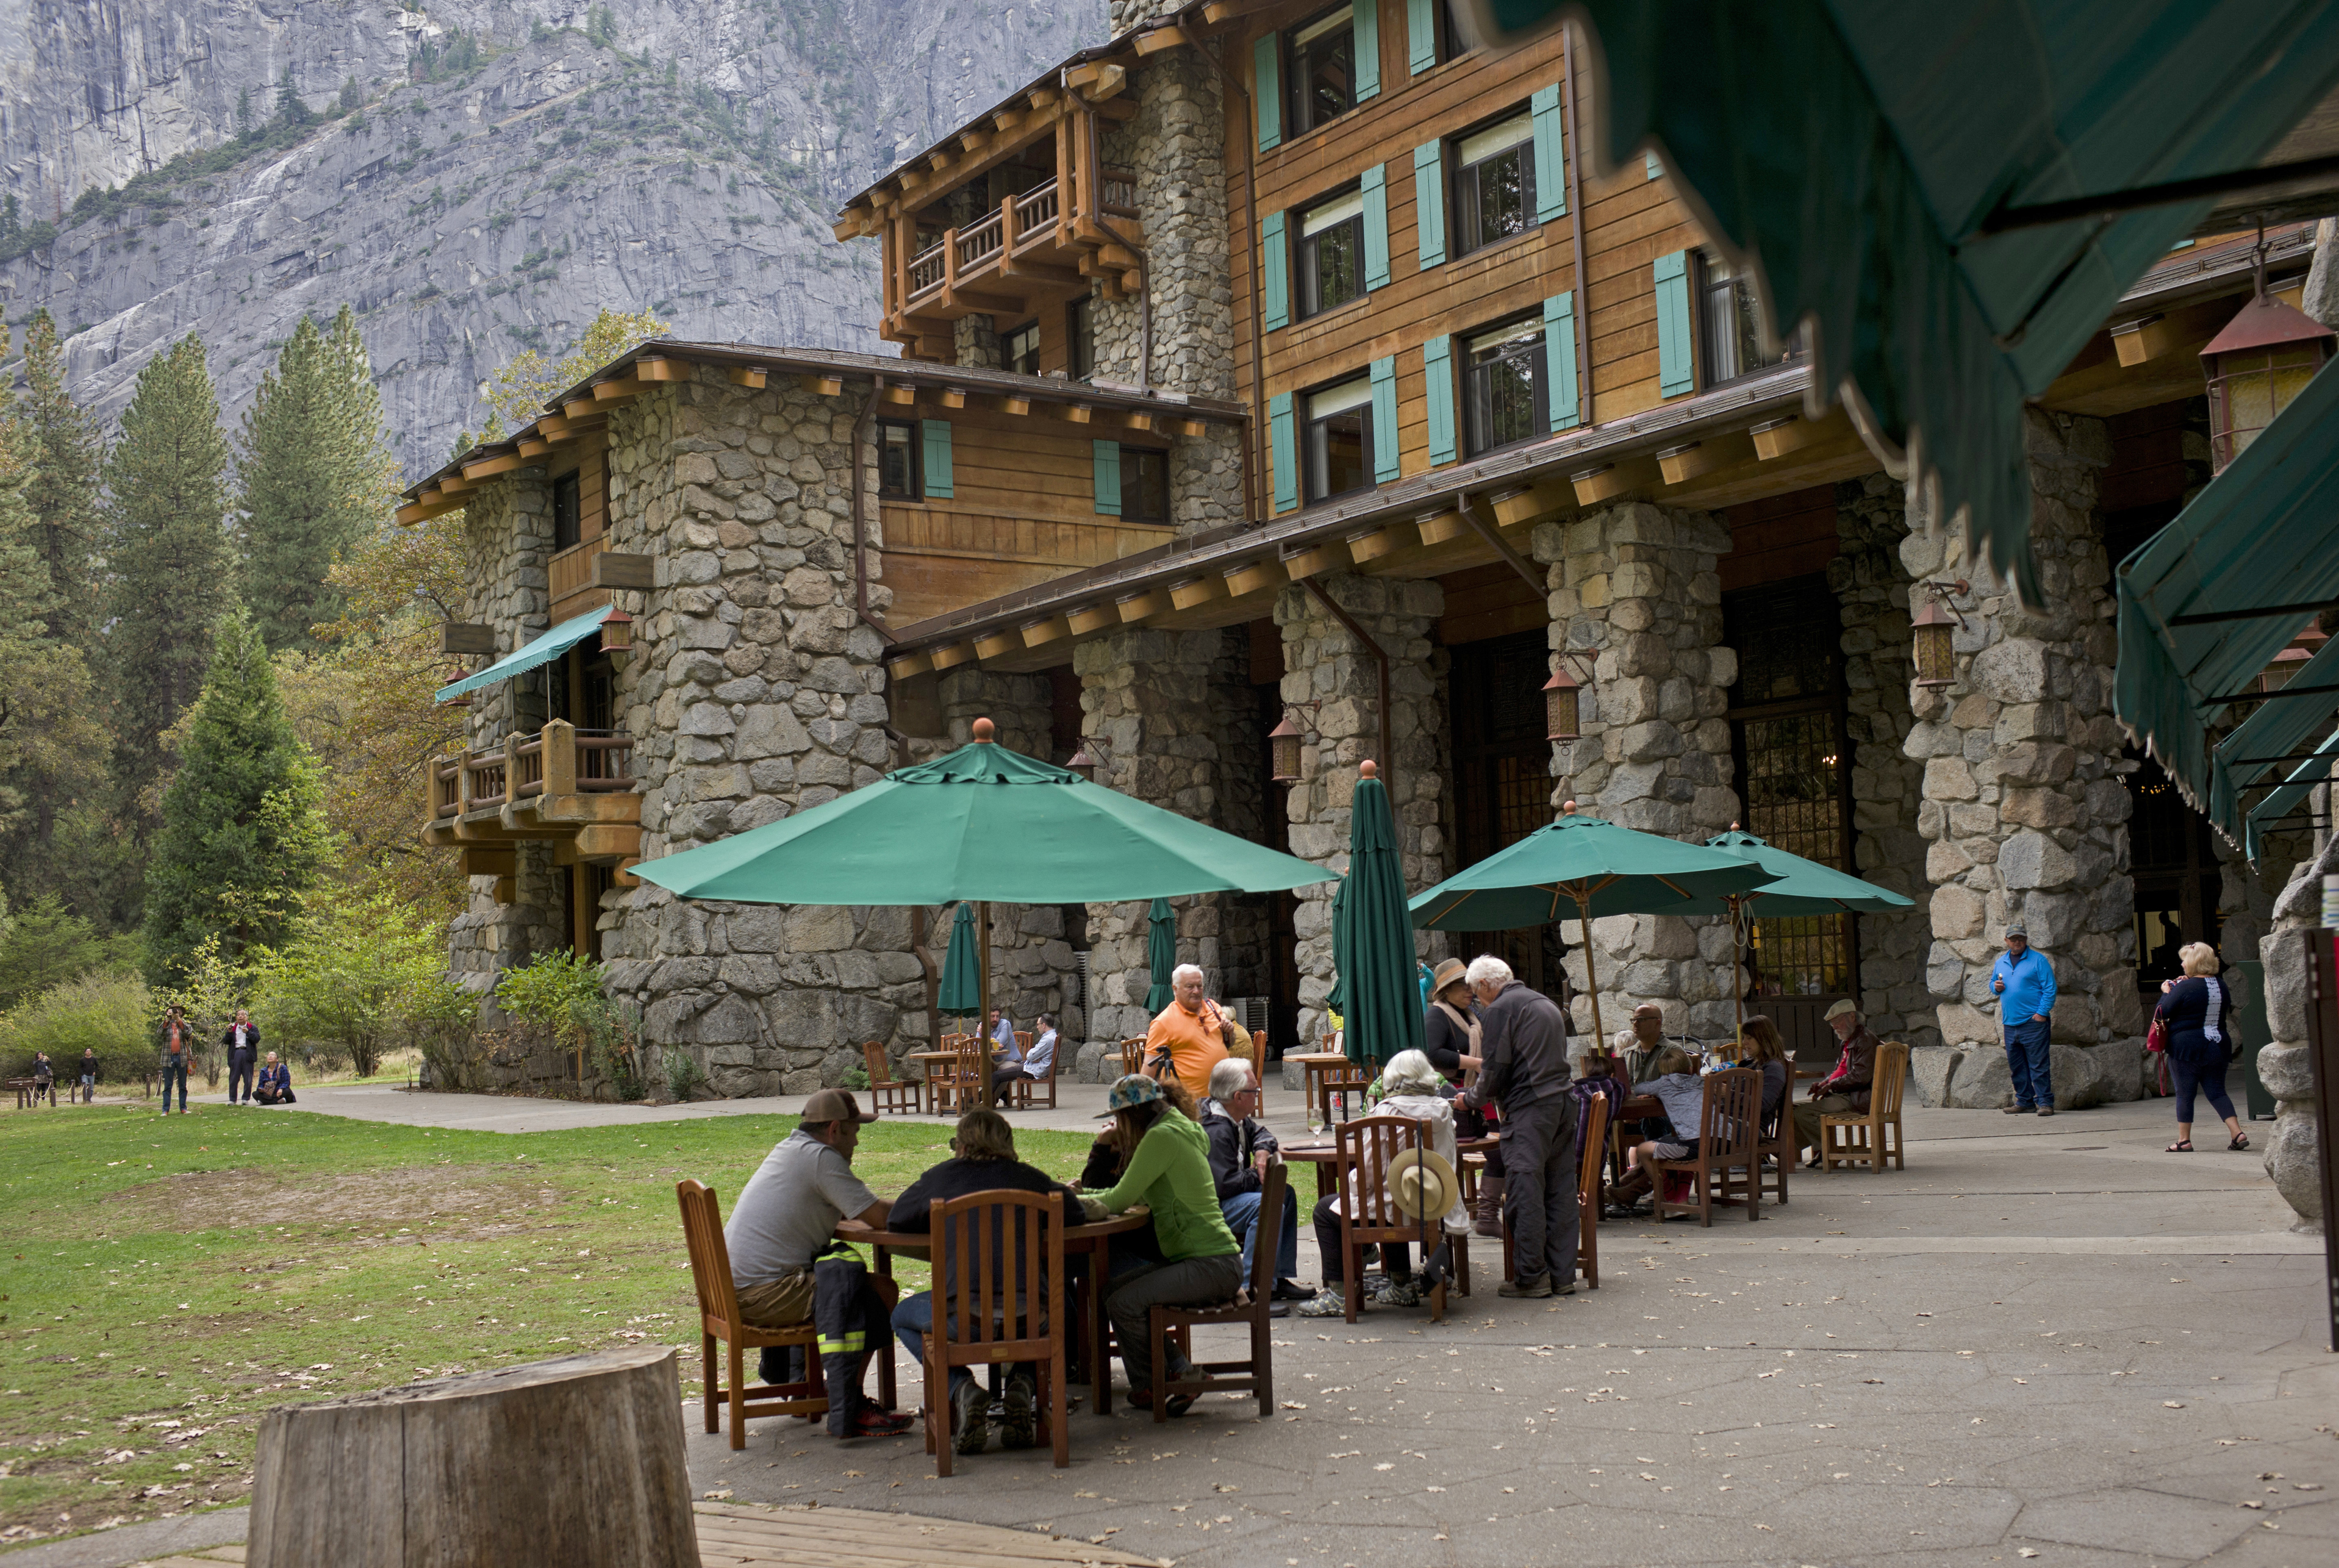 People dine outside the Ahwahnee hotel in Yosemite National Park, Calif. on Oct. 24, 2015.